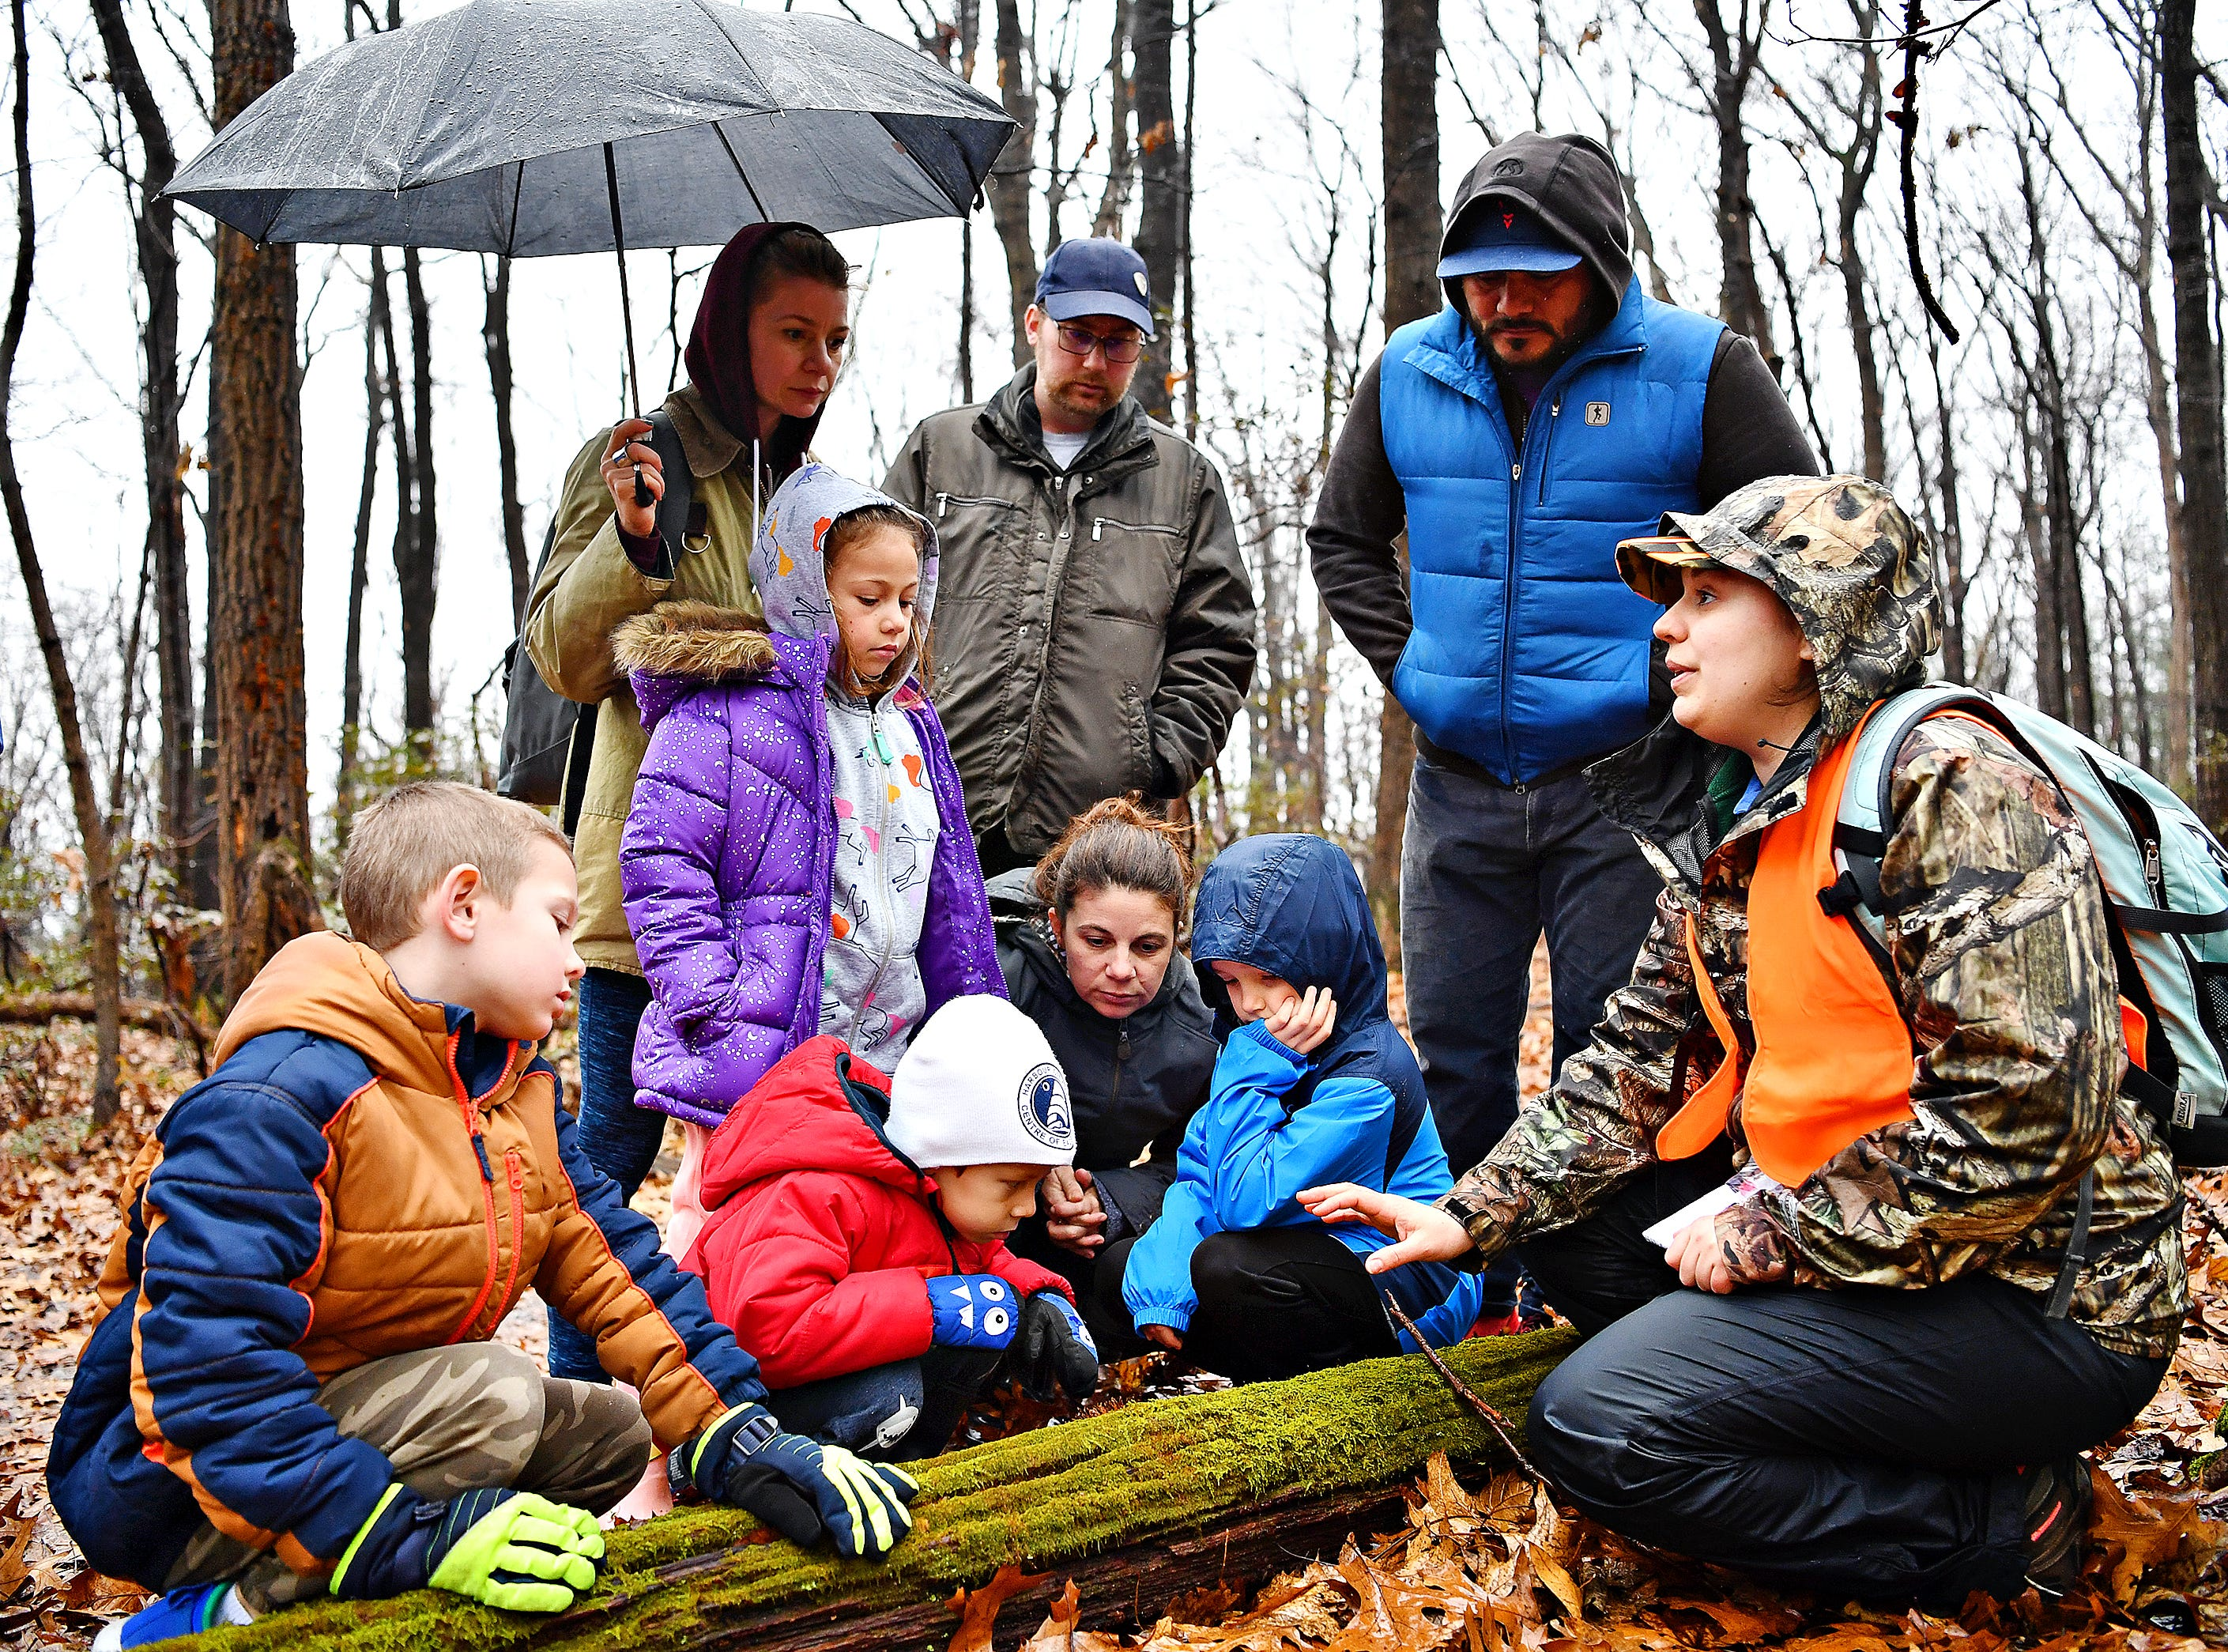 York County Parks Naturalist Kelsey Frey, front right, talks about moss during a Marshmallow Hike at Rocky Ridge Park in Springettsbury Township, Friday, Dec. 28, 2018. Hikers would enjoy a hot cup of cocoa with marshmallows following the hike. Dawn J. Sagert photo